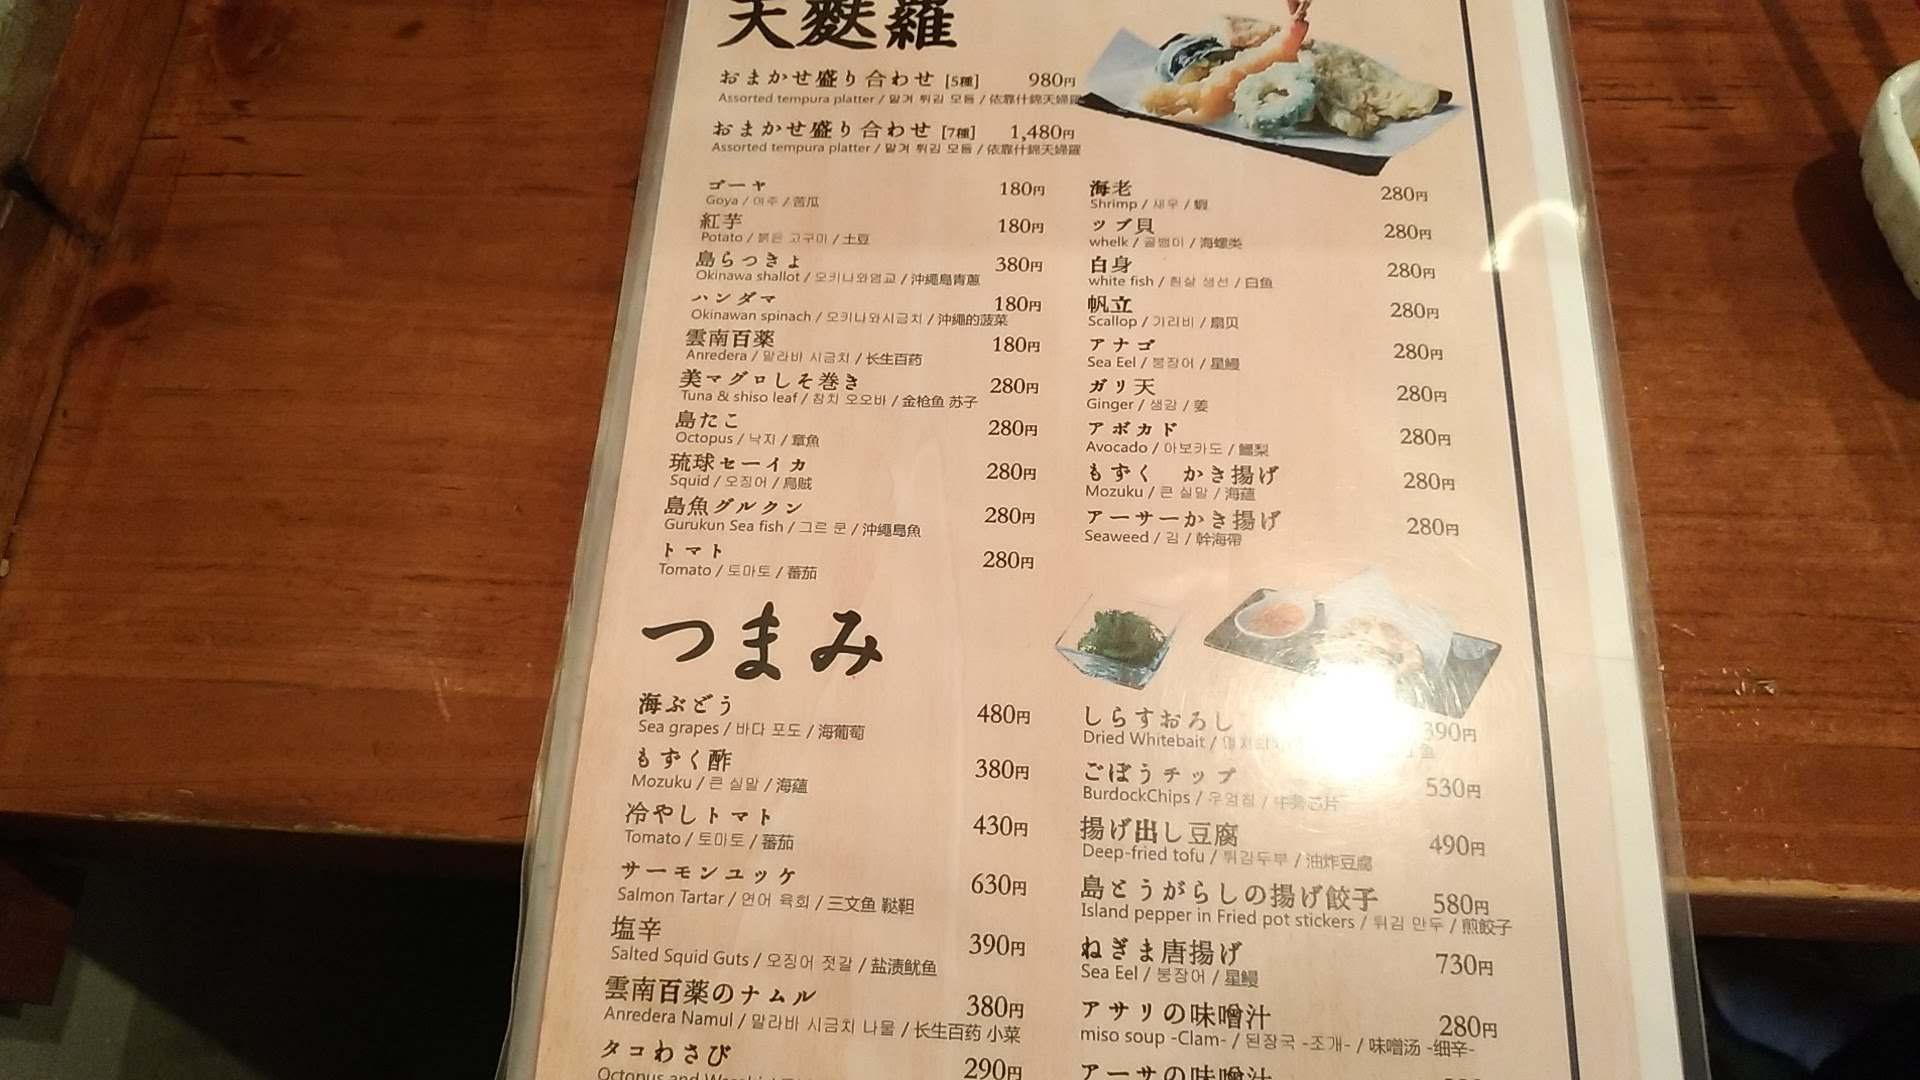 The menu of Sakana sushi 8